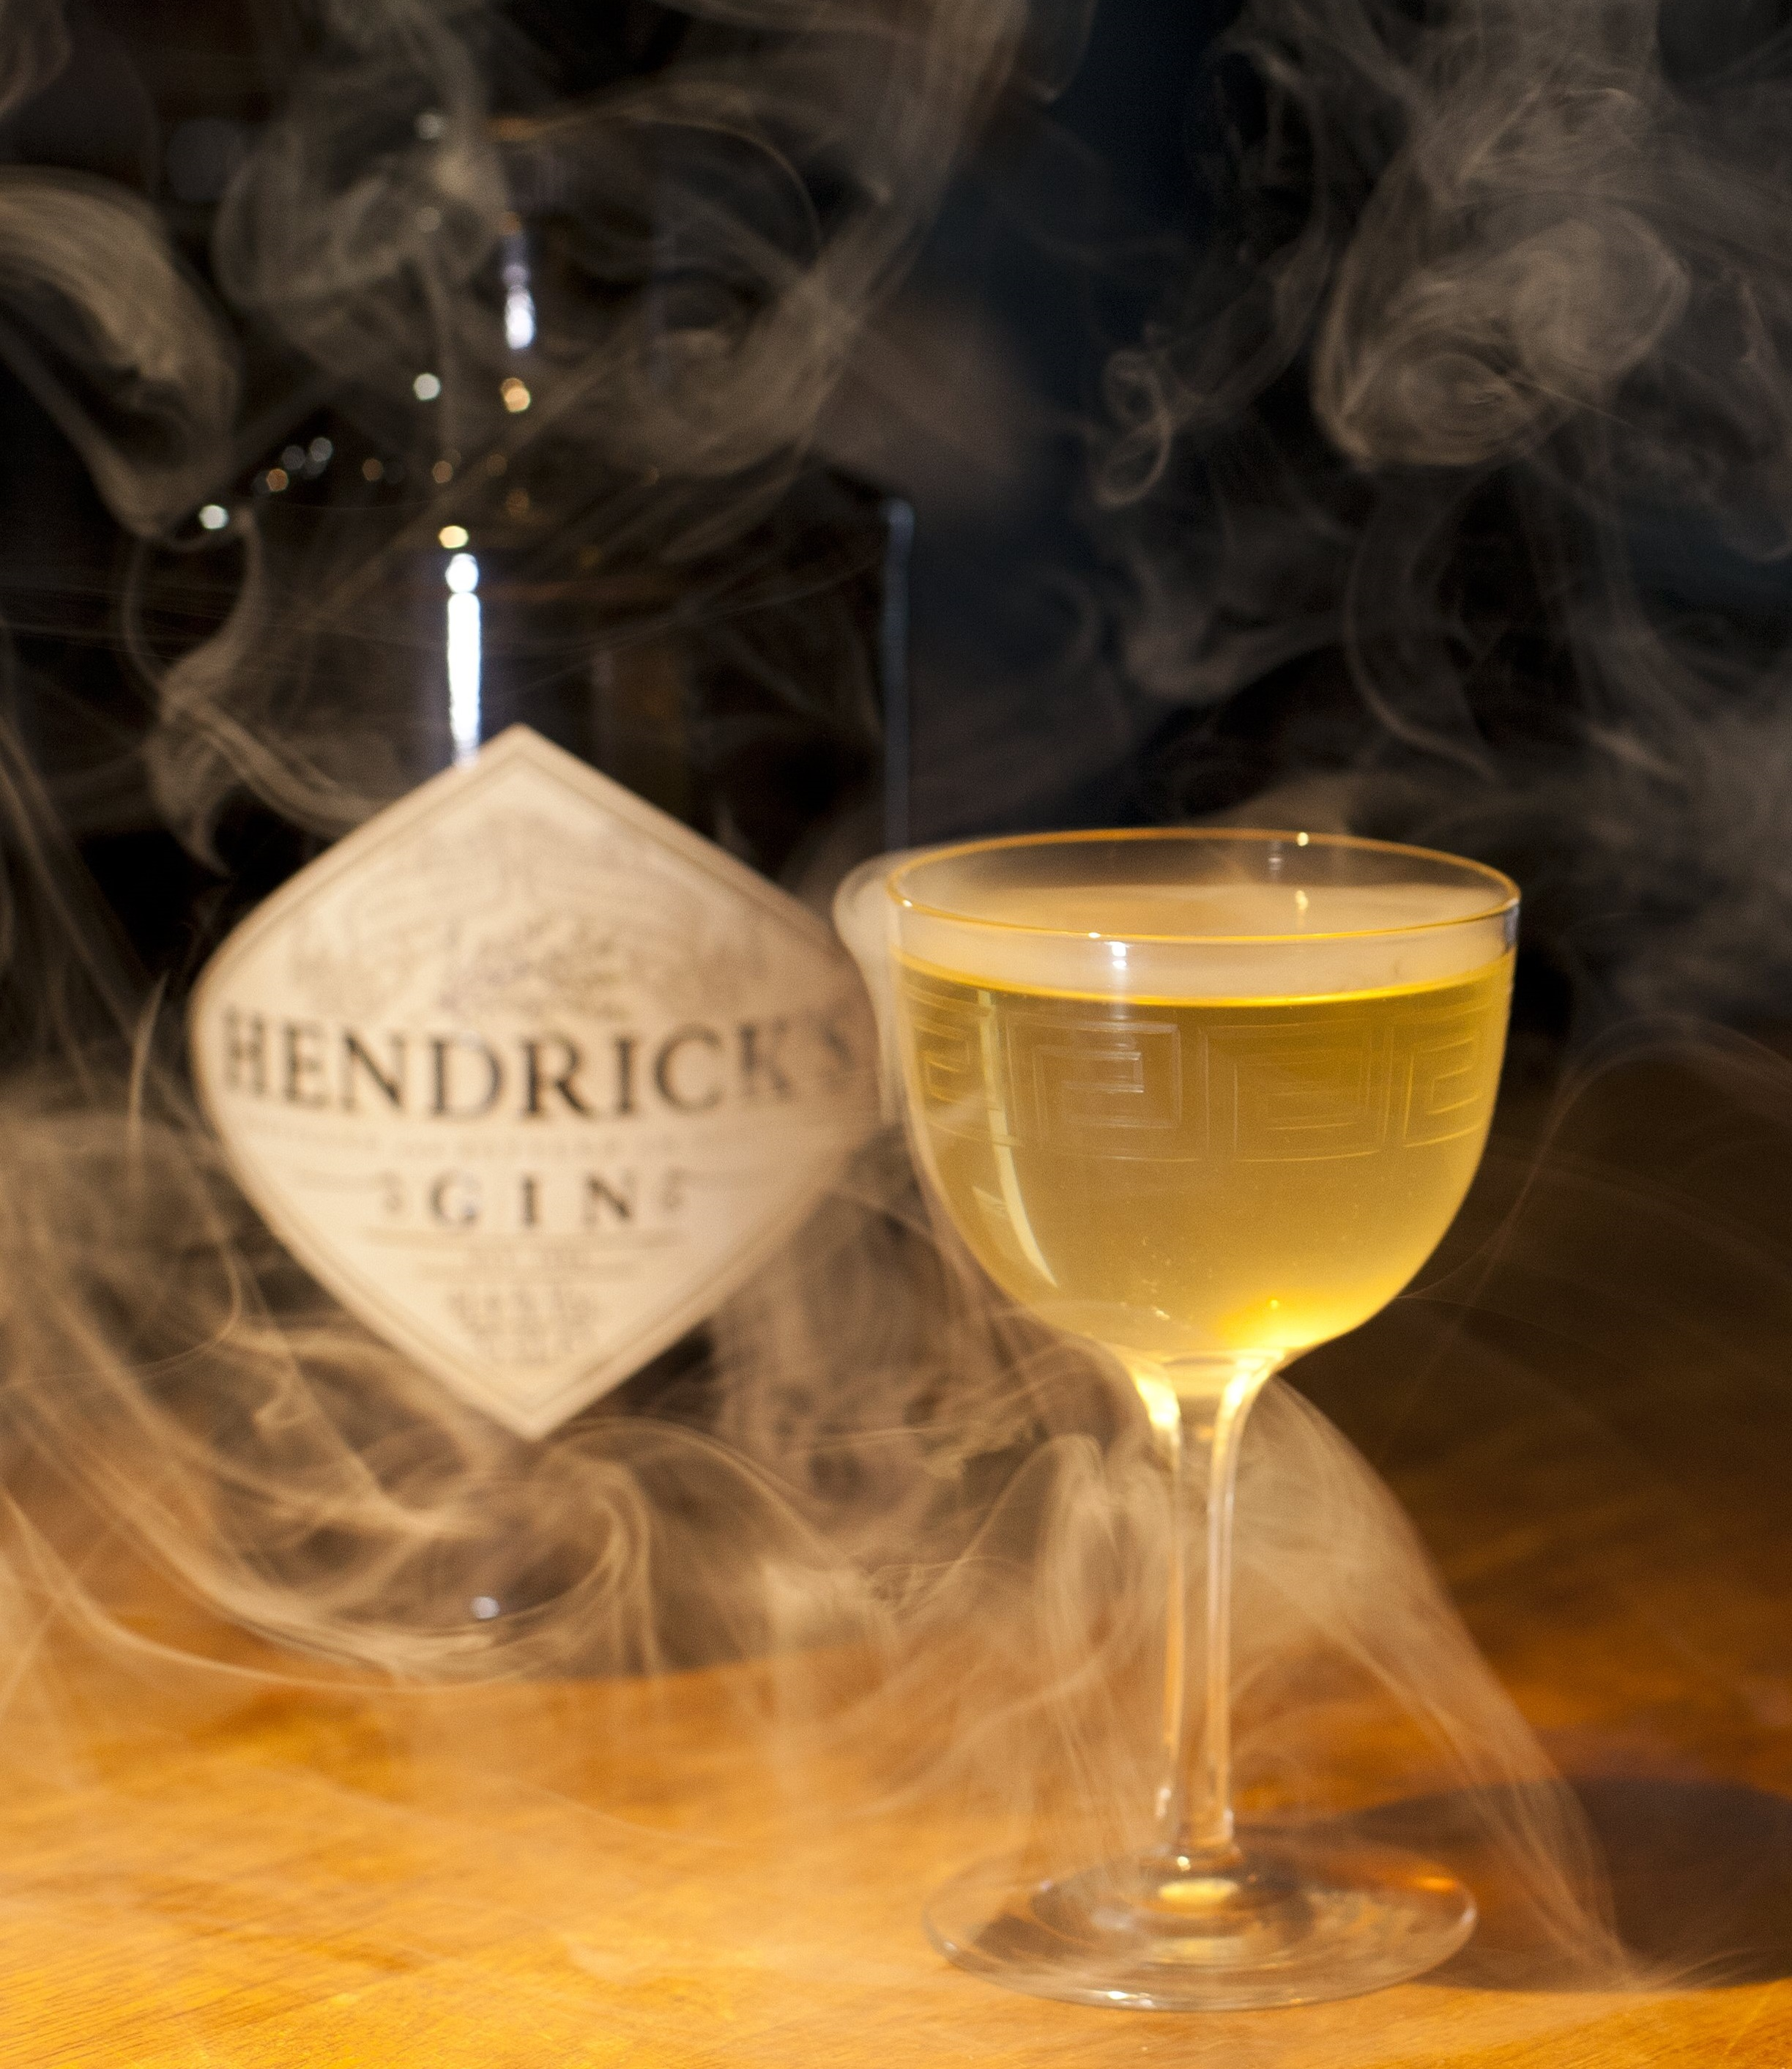 Hendrick?s Gin Celebrates Spring With This Fun Recipe photo